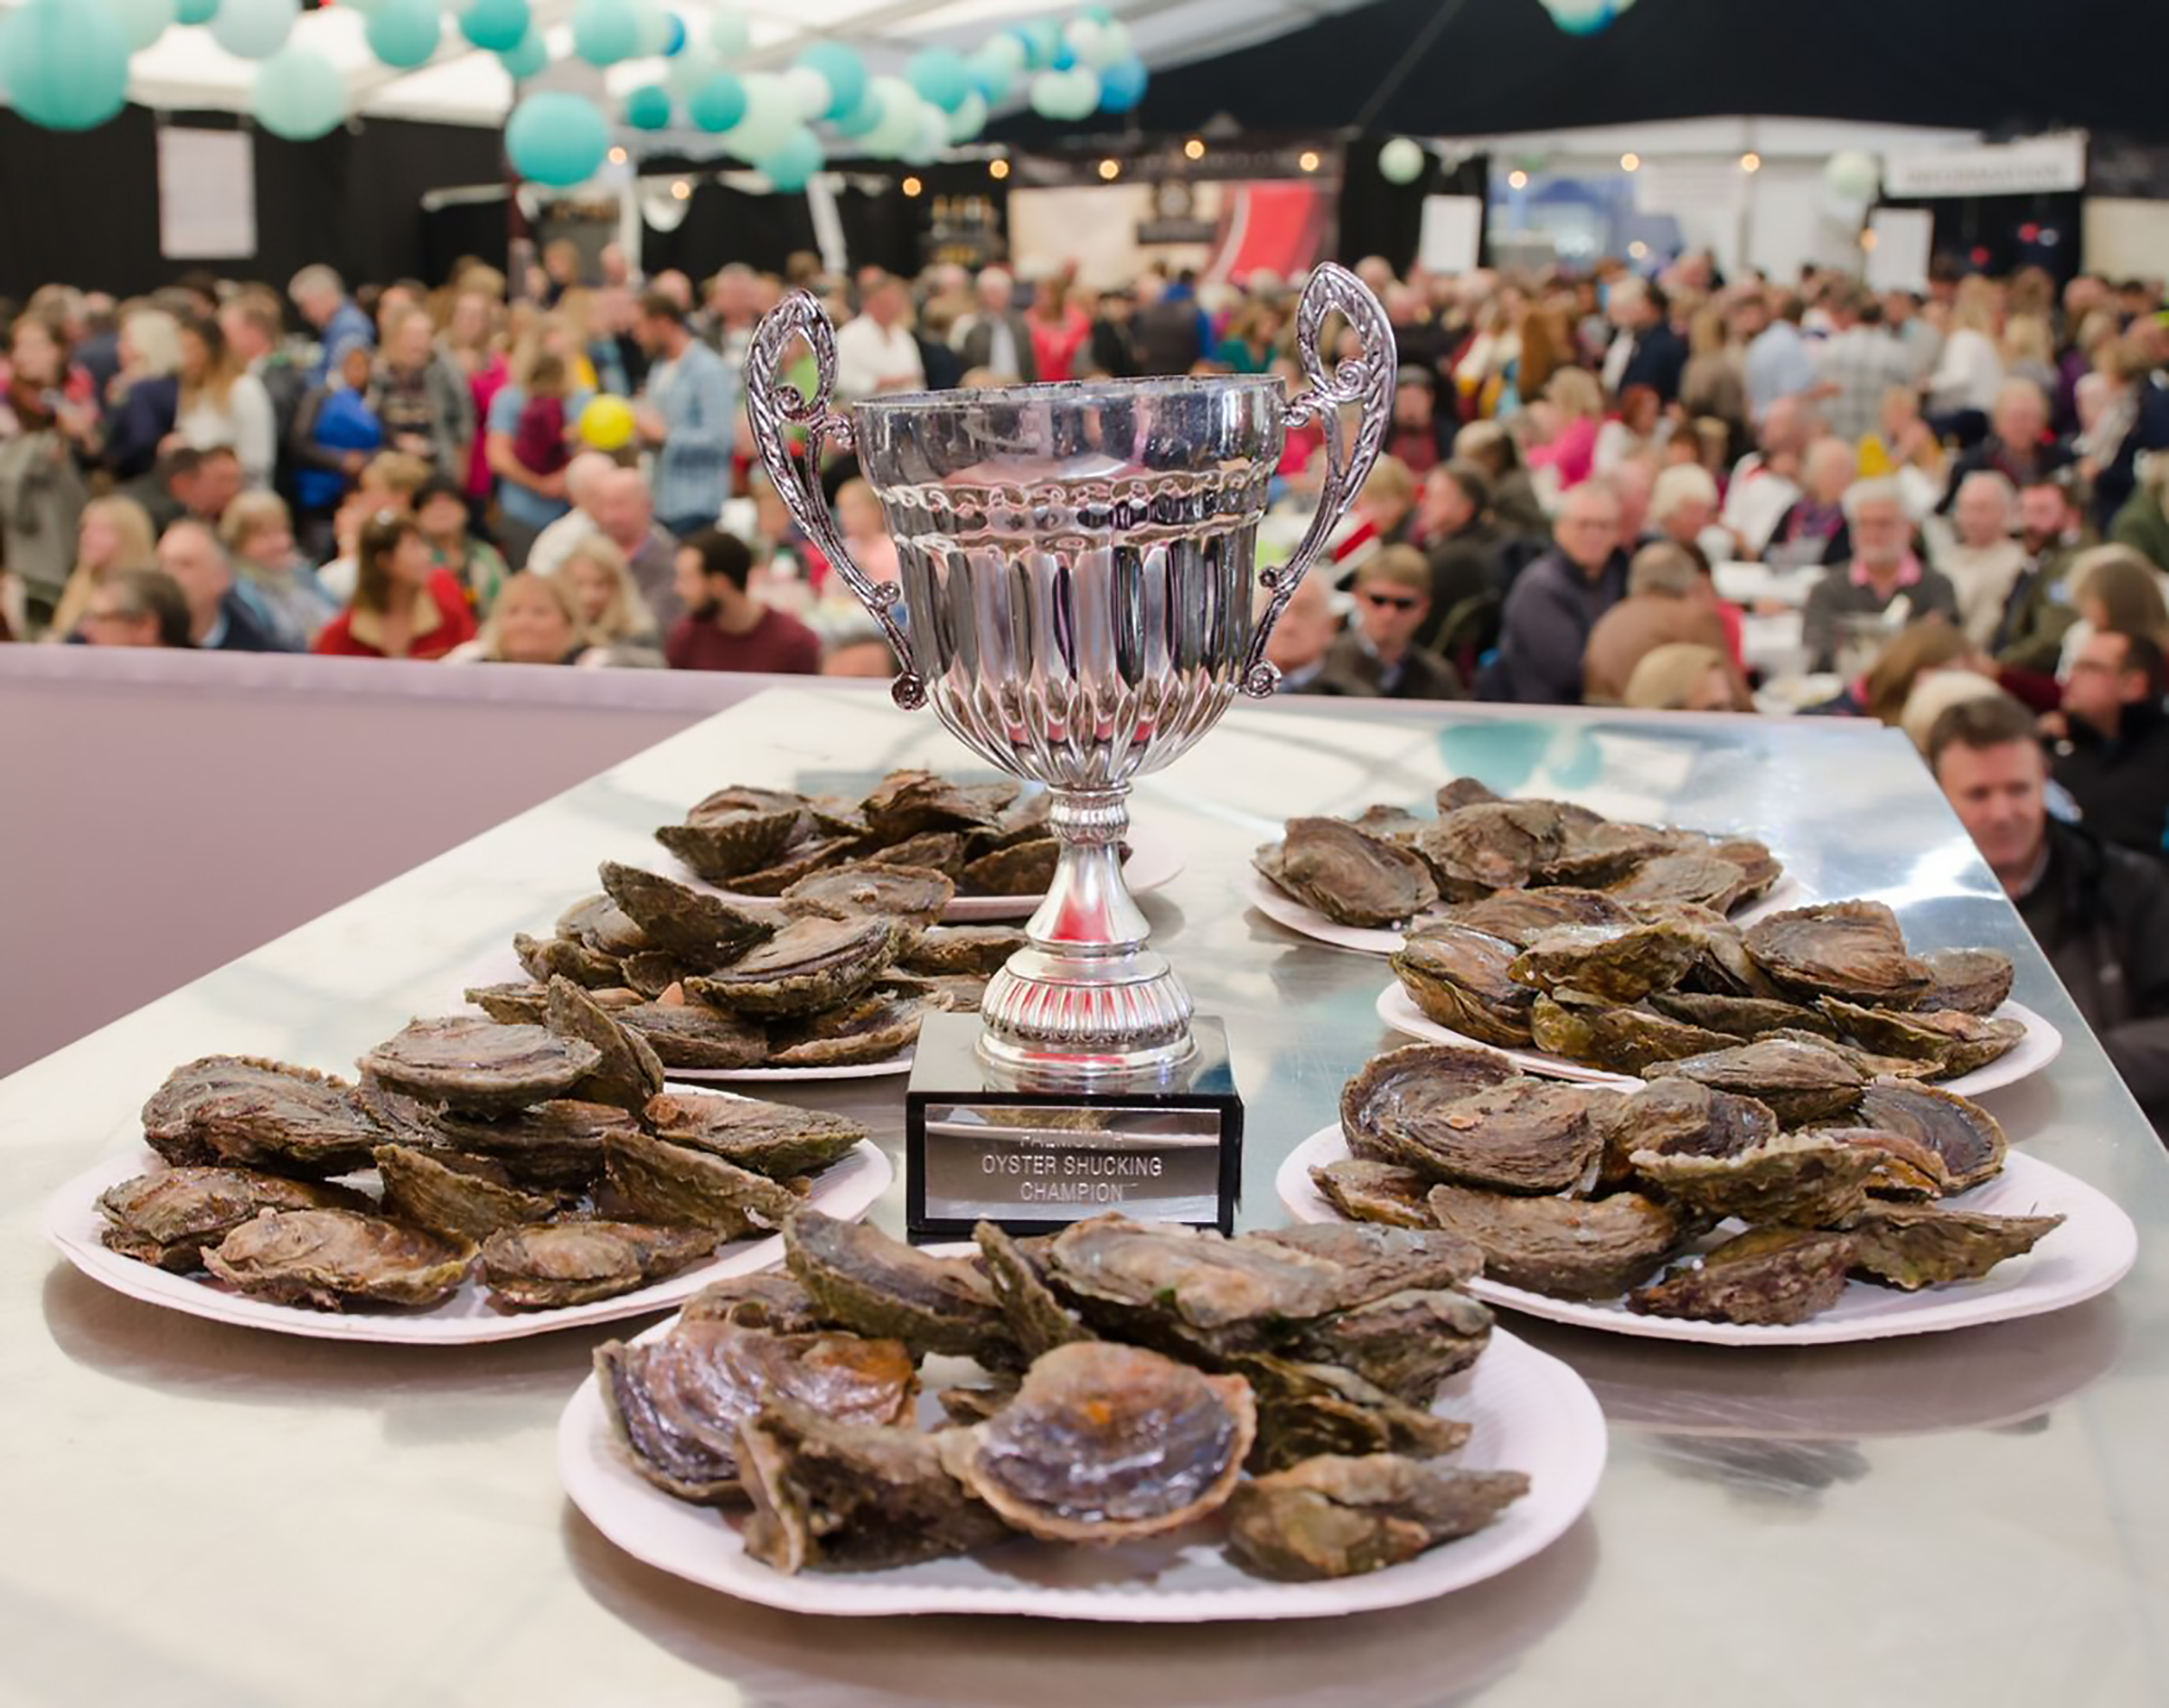 Oyster festival United Kingdom